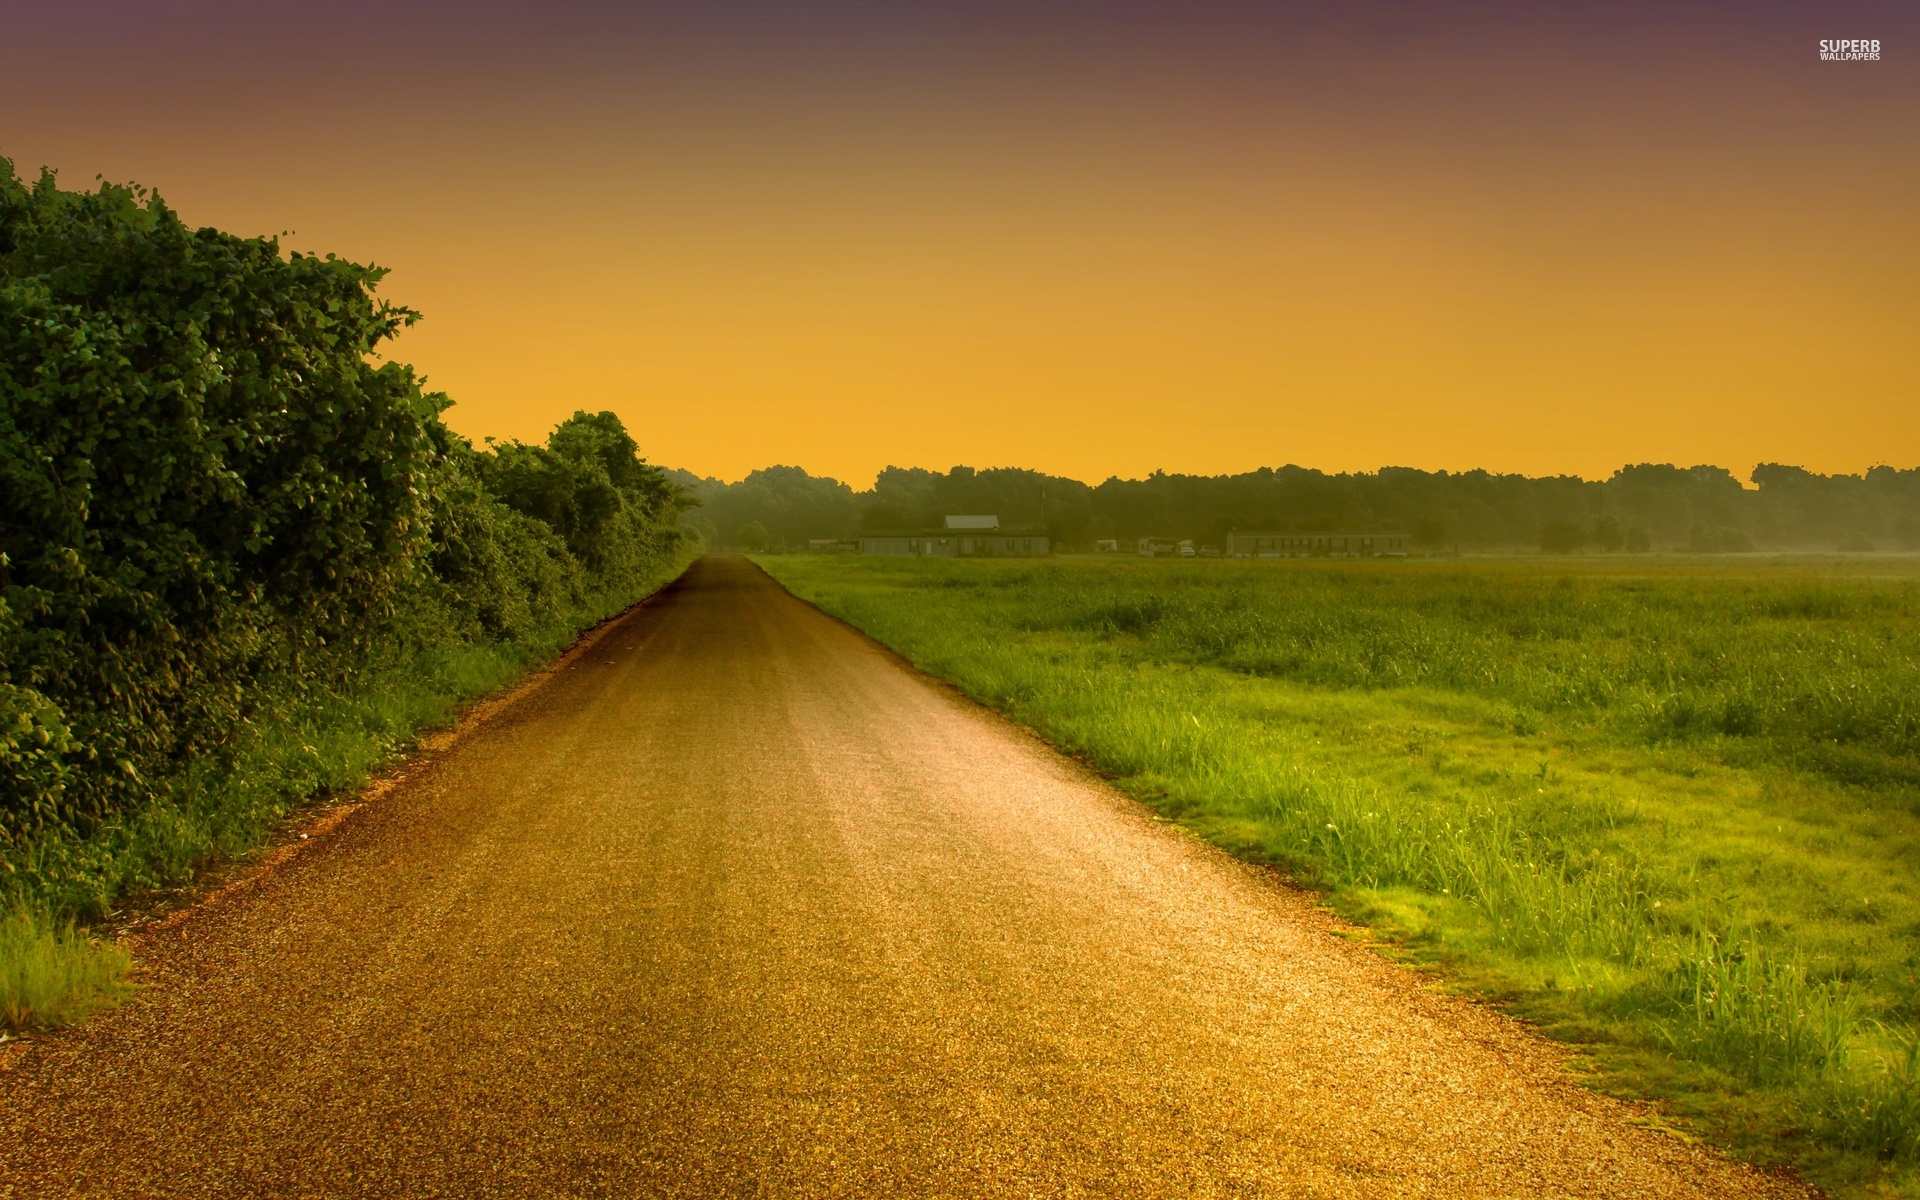 Image Hedge Road Field Golden Sunset Wallpapers And Stock Photos